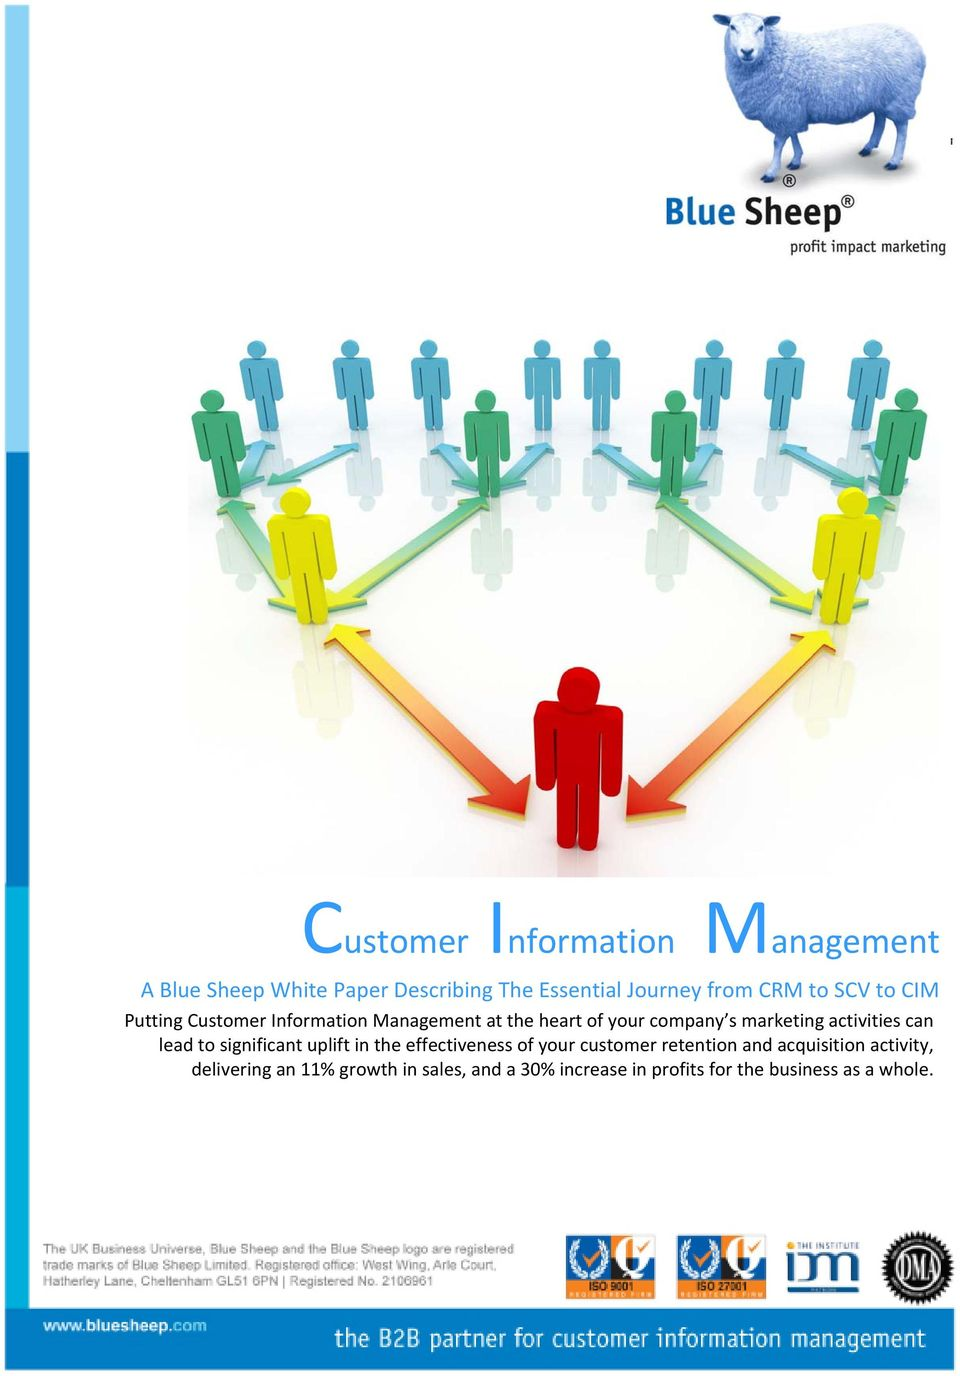 activities can lead to significant uplift in the effectiveness of your customer retention and